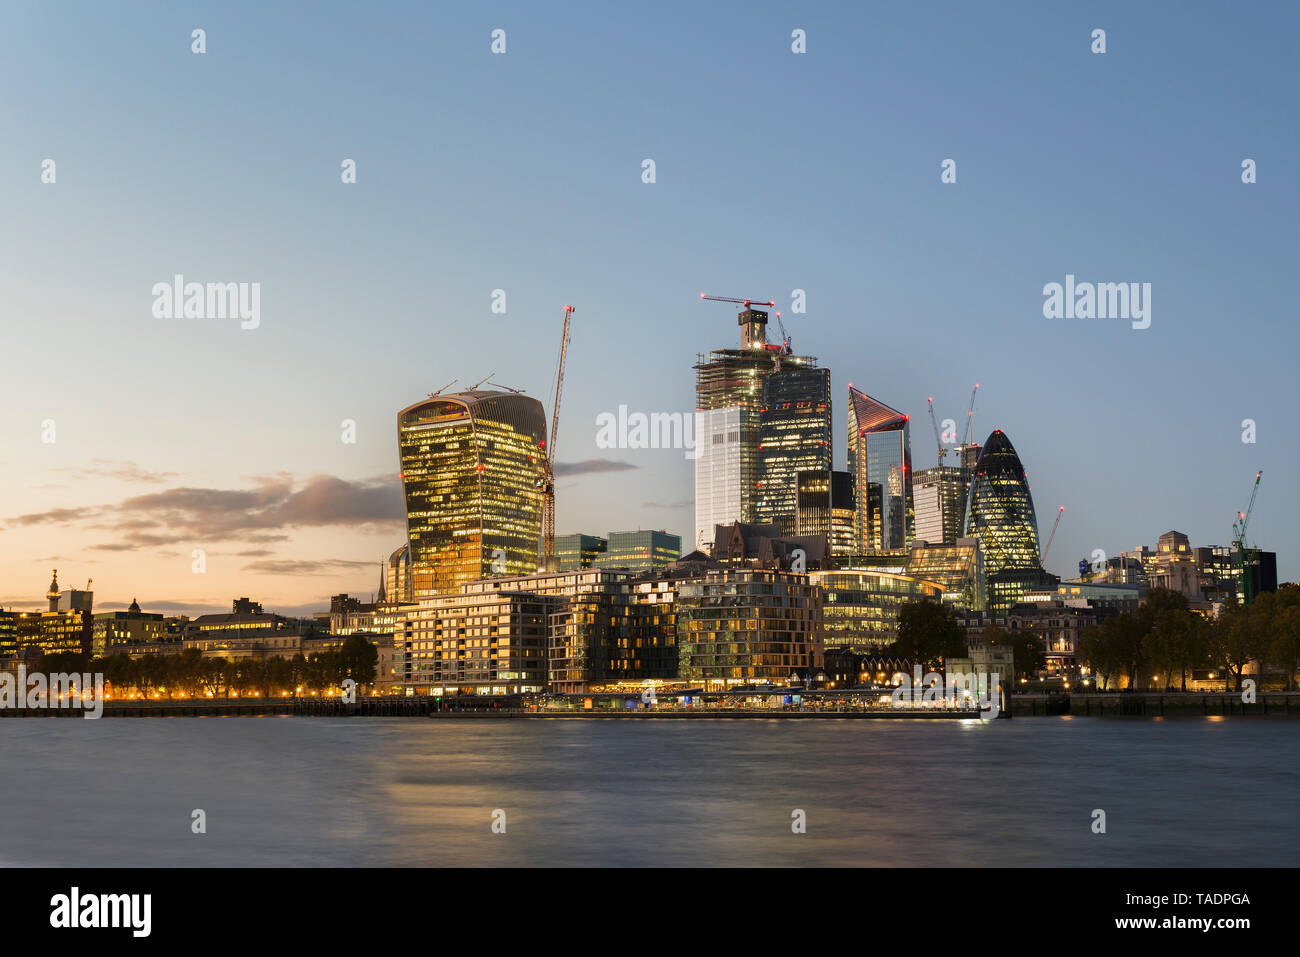 UK, London, City of London, River Thames, skyline with modern office buildings at sunset Stock Photo